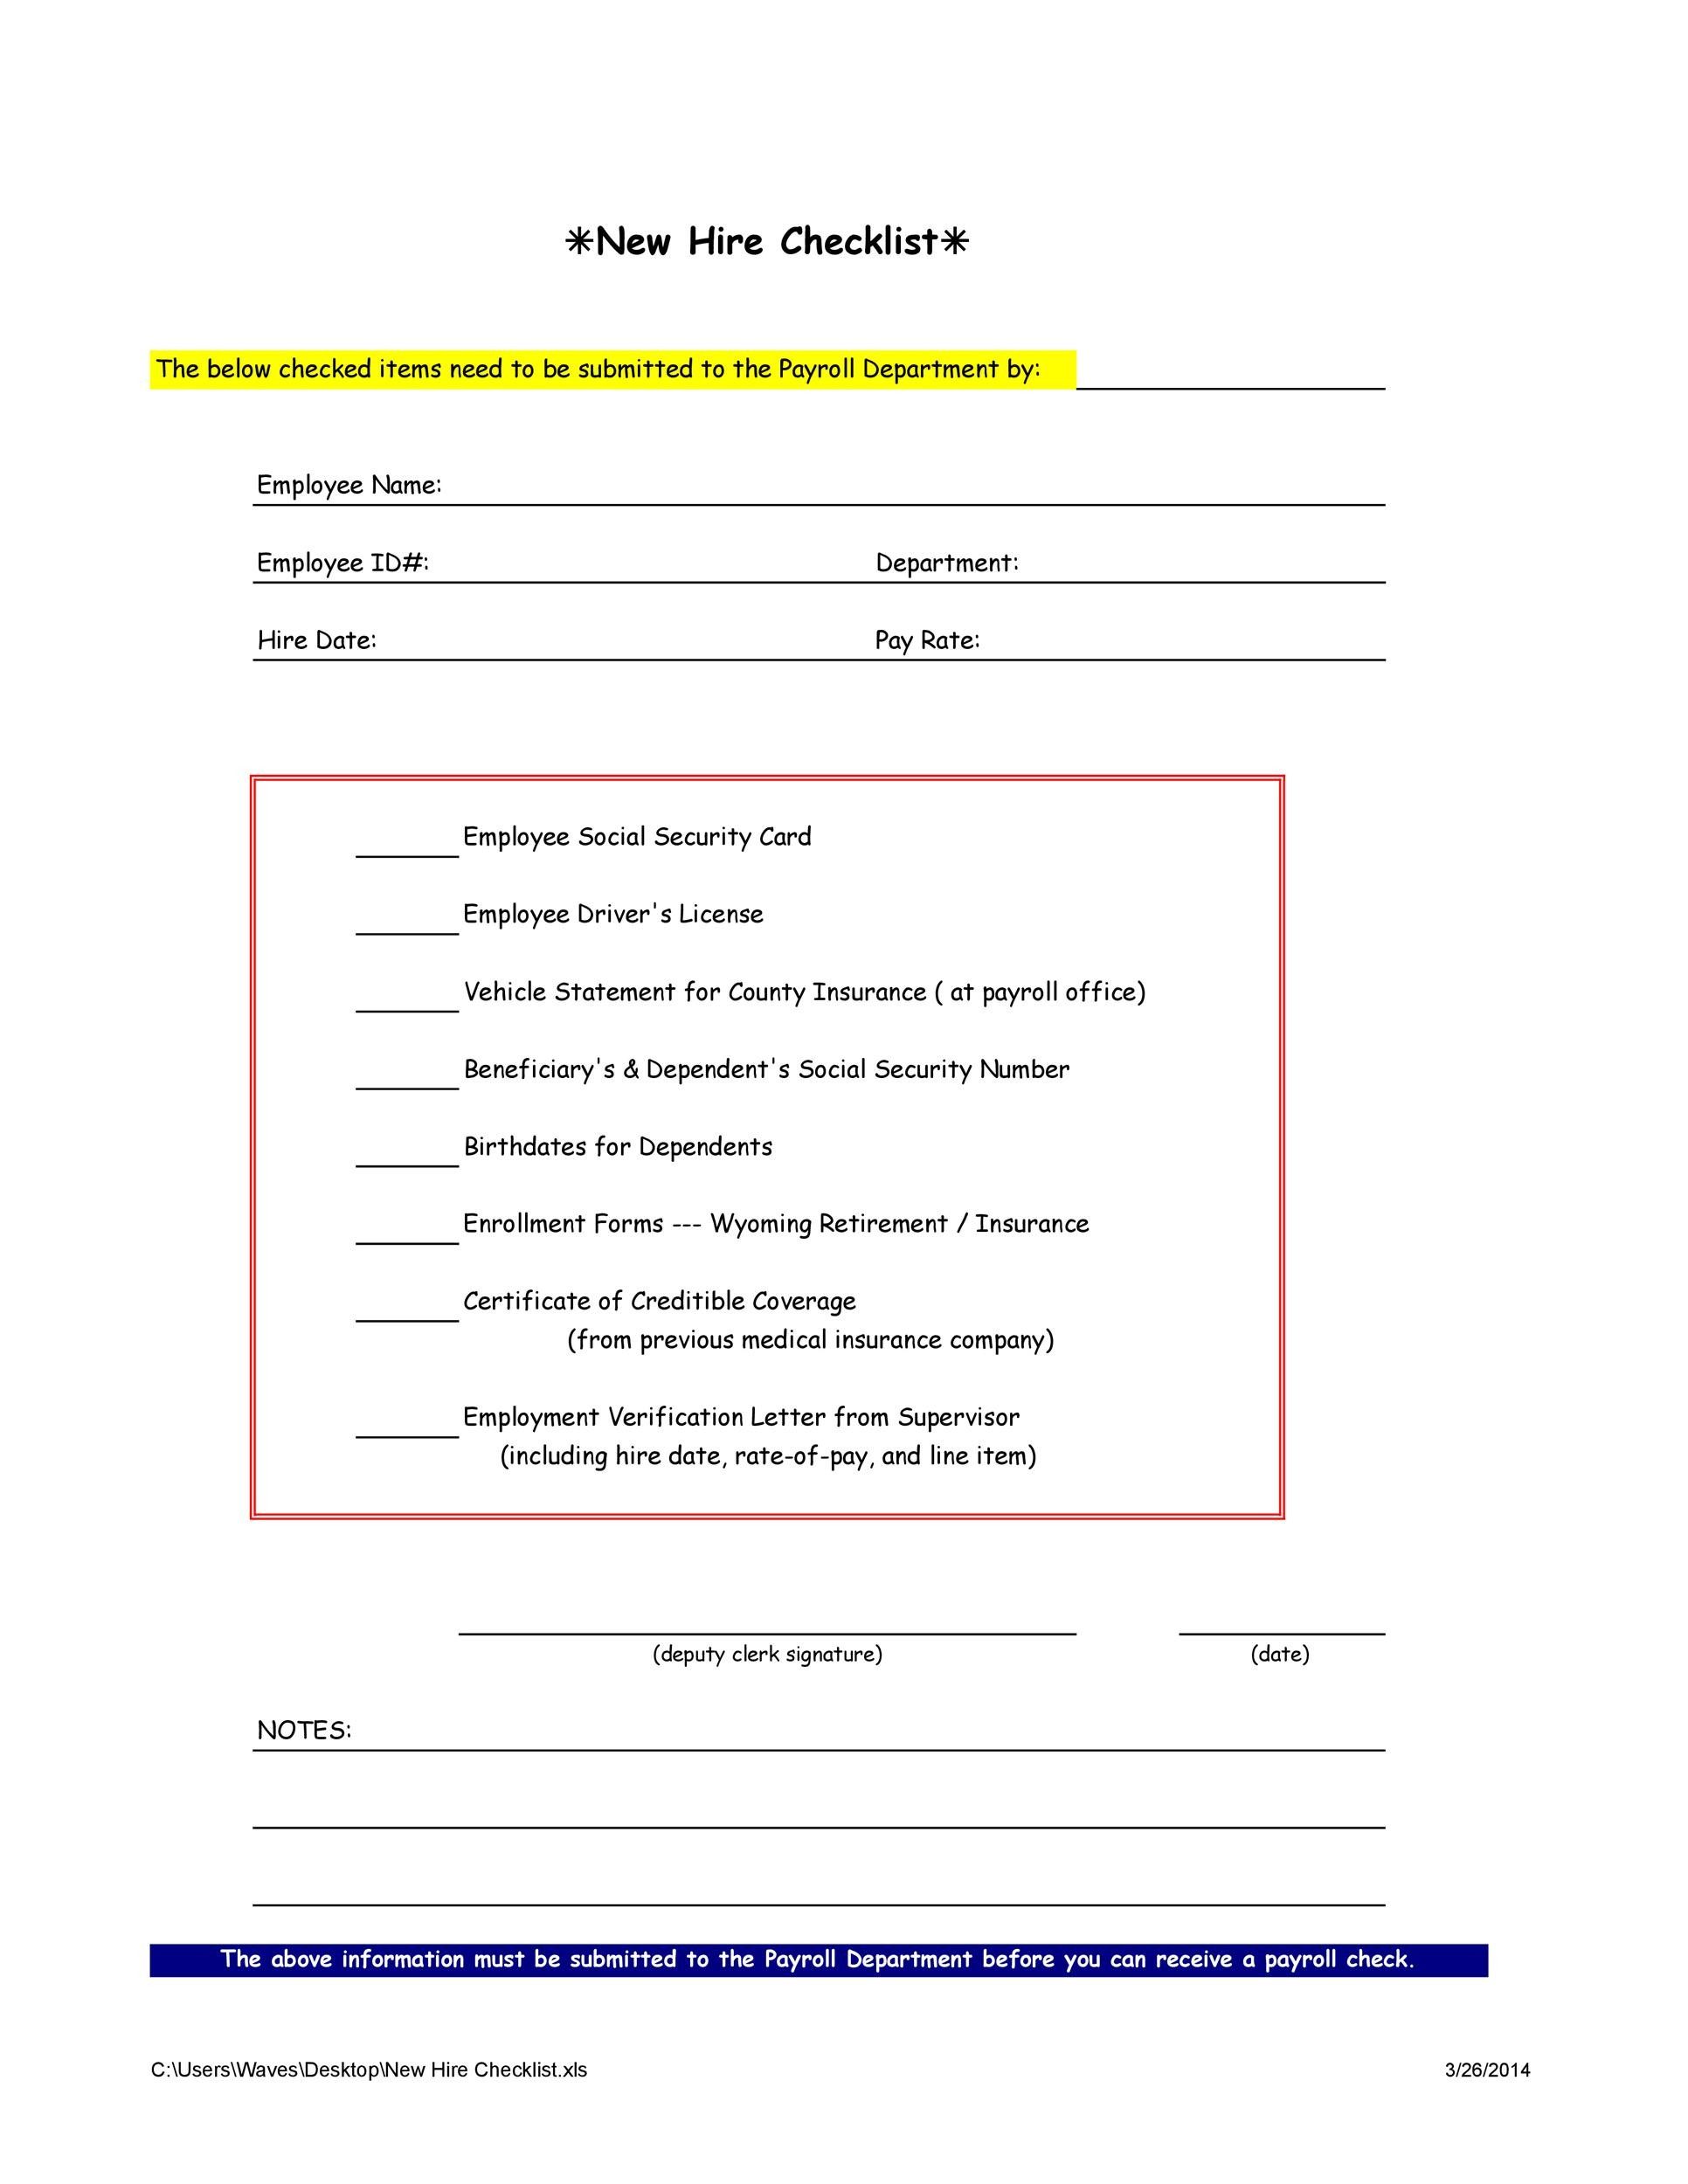 Sample new hire checklist templates: 50 Useful New Hire Checklist Templates Forms Á… Templatelab